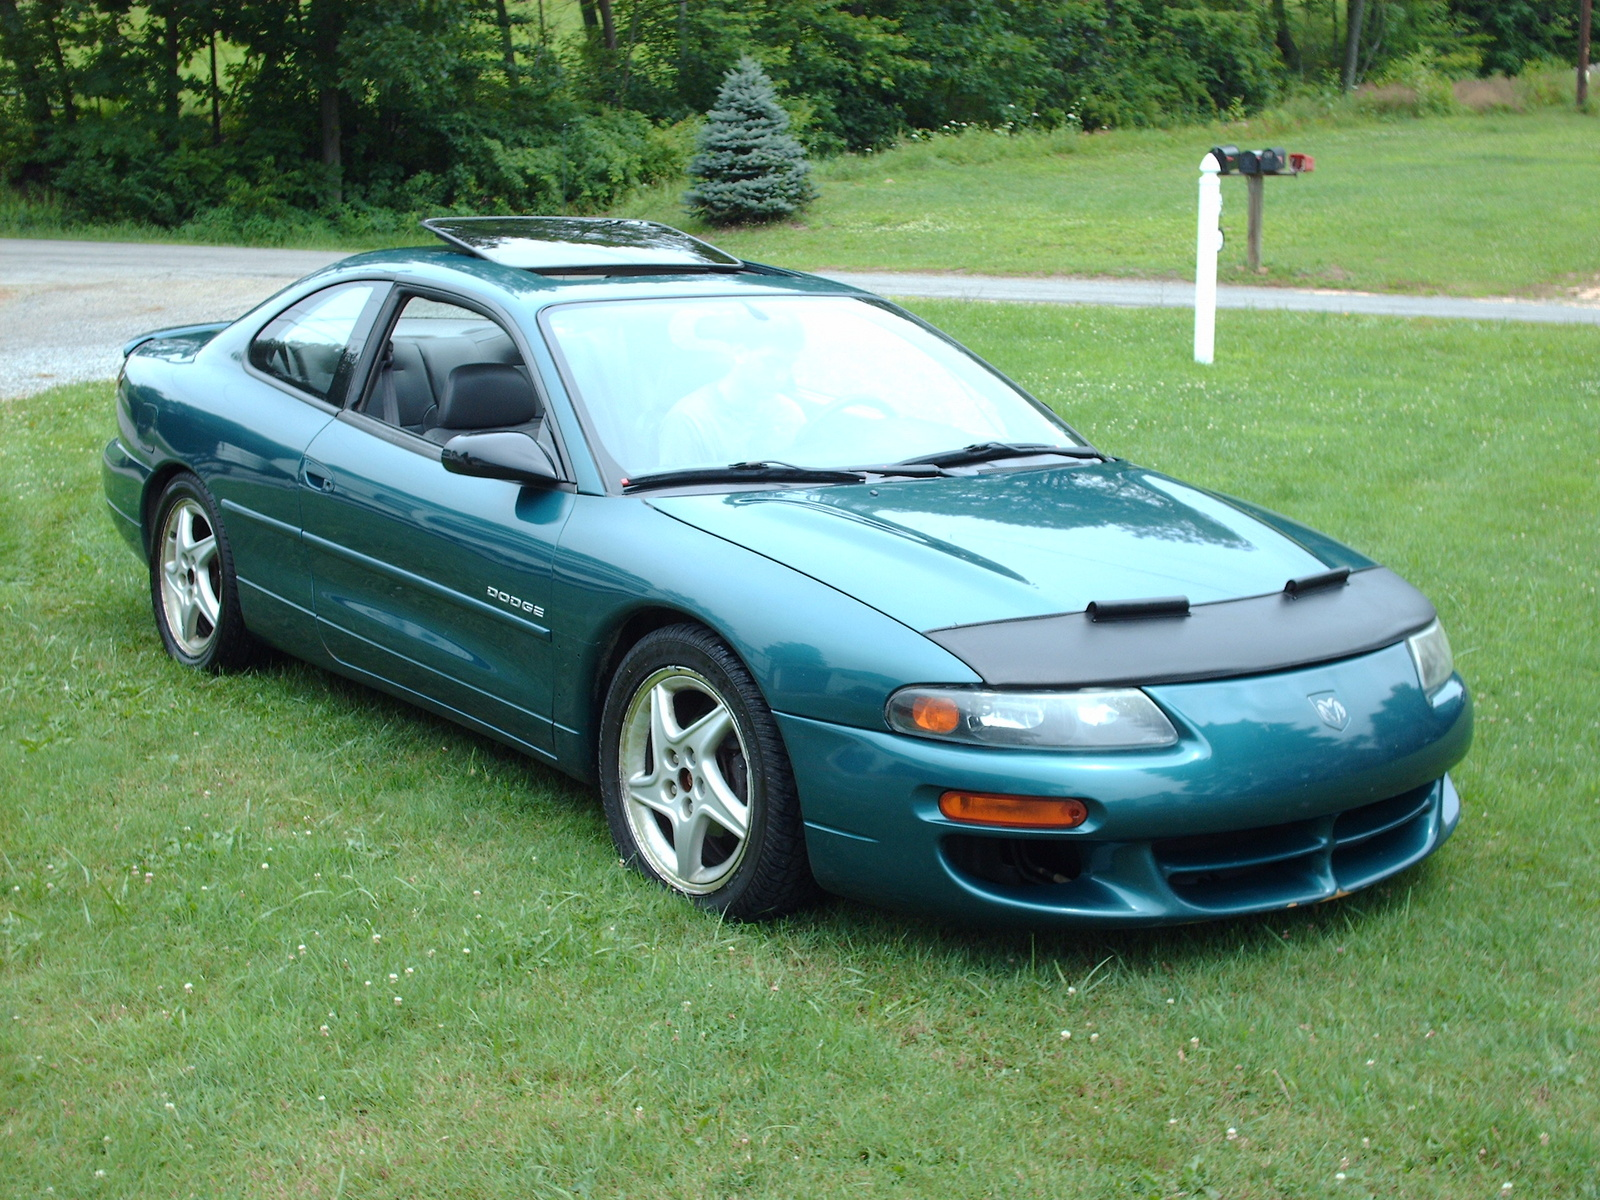 1999 Dodge Avenger Information and photos ZombieDrive